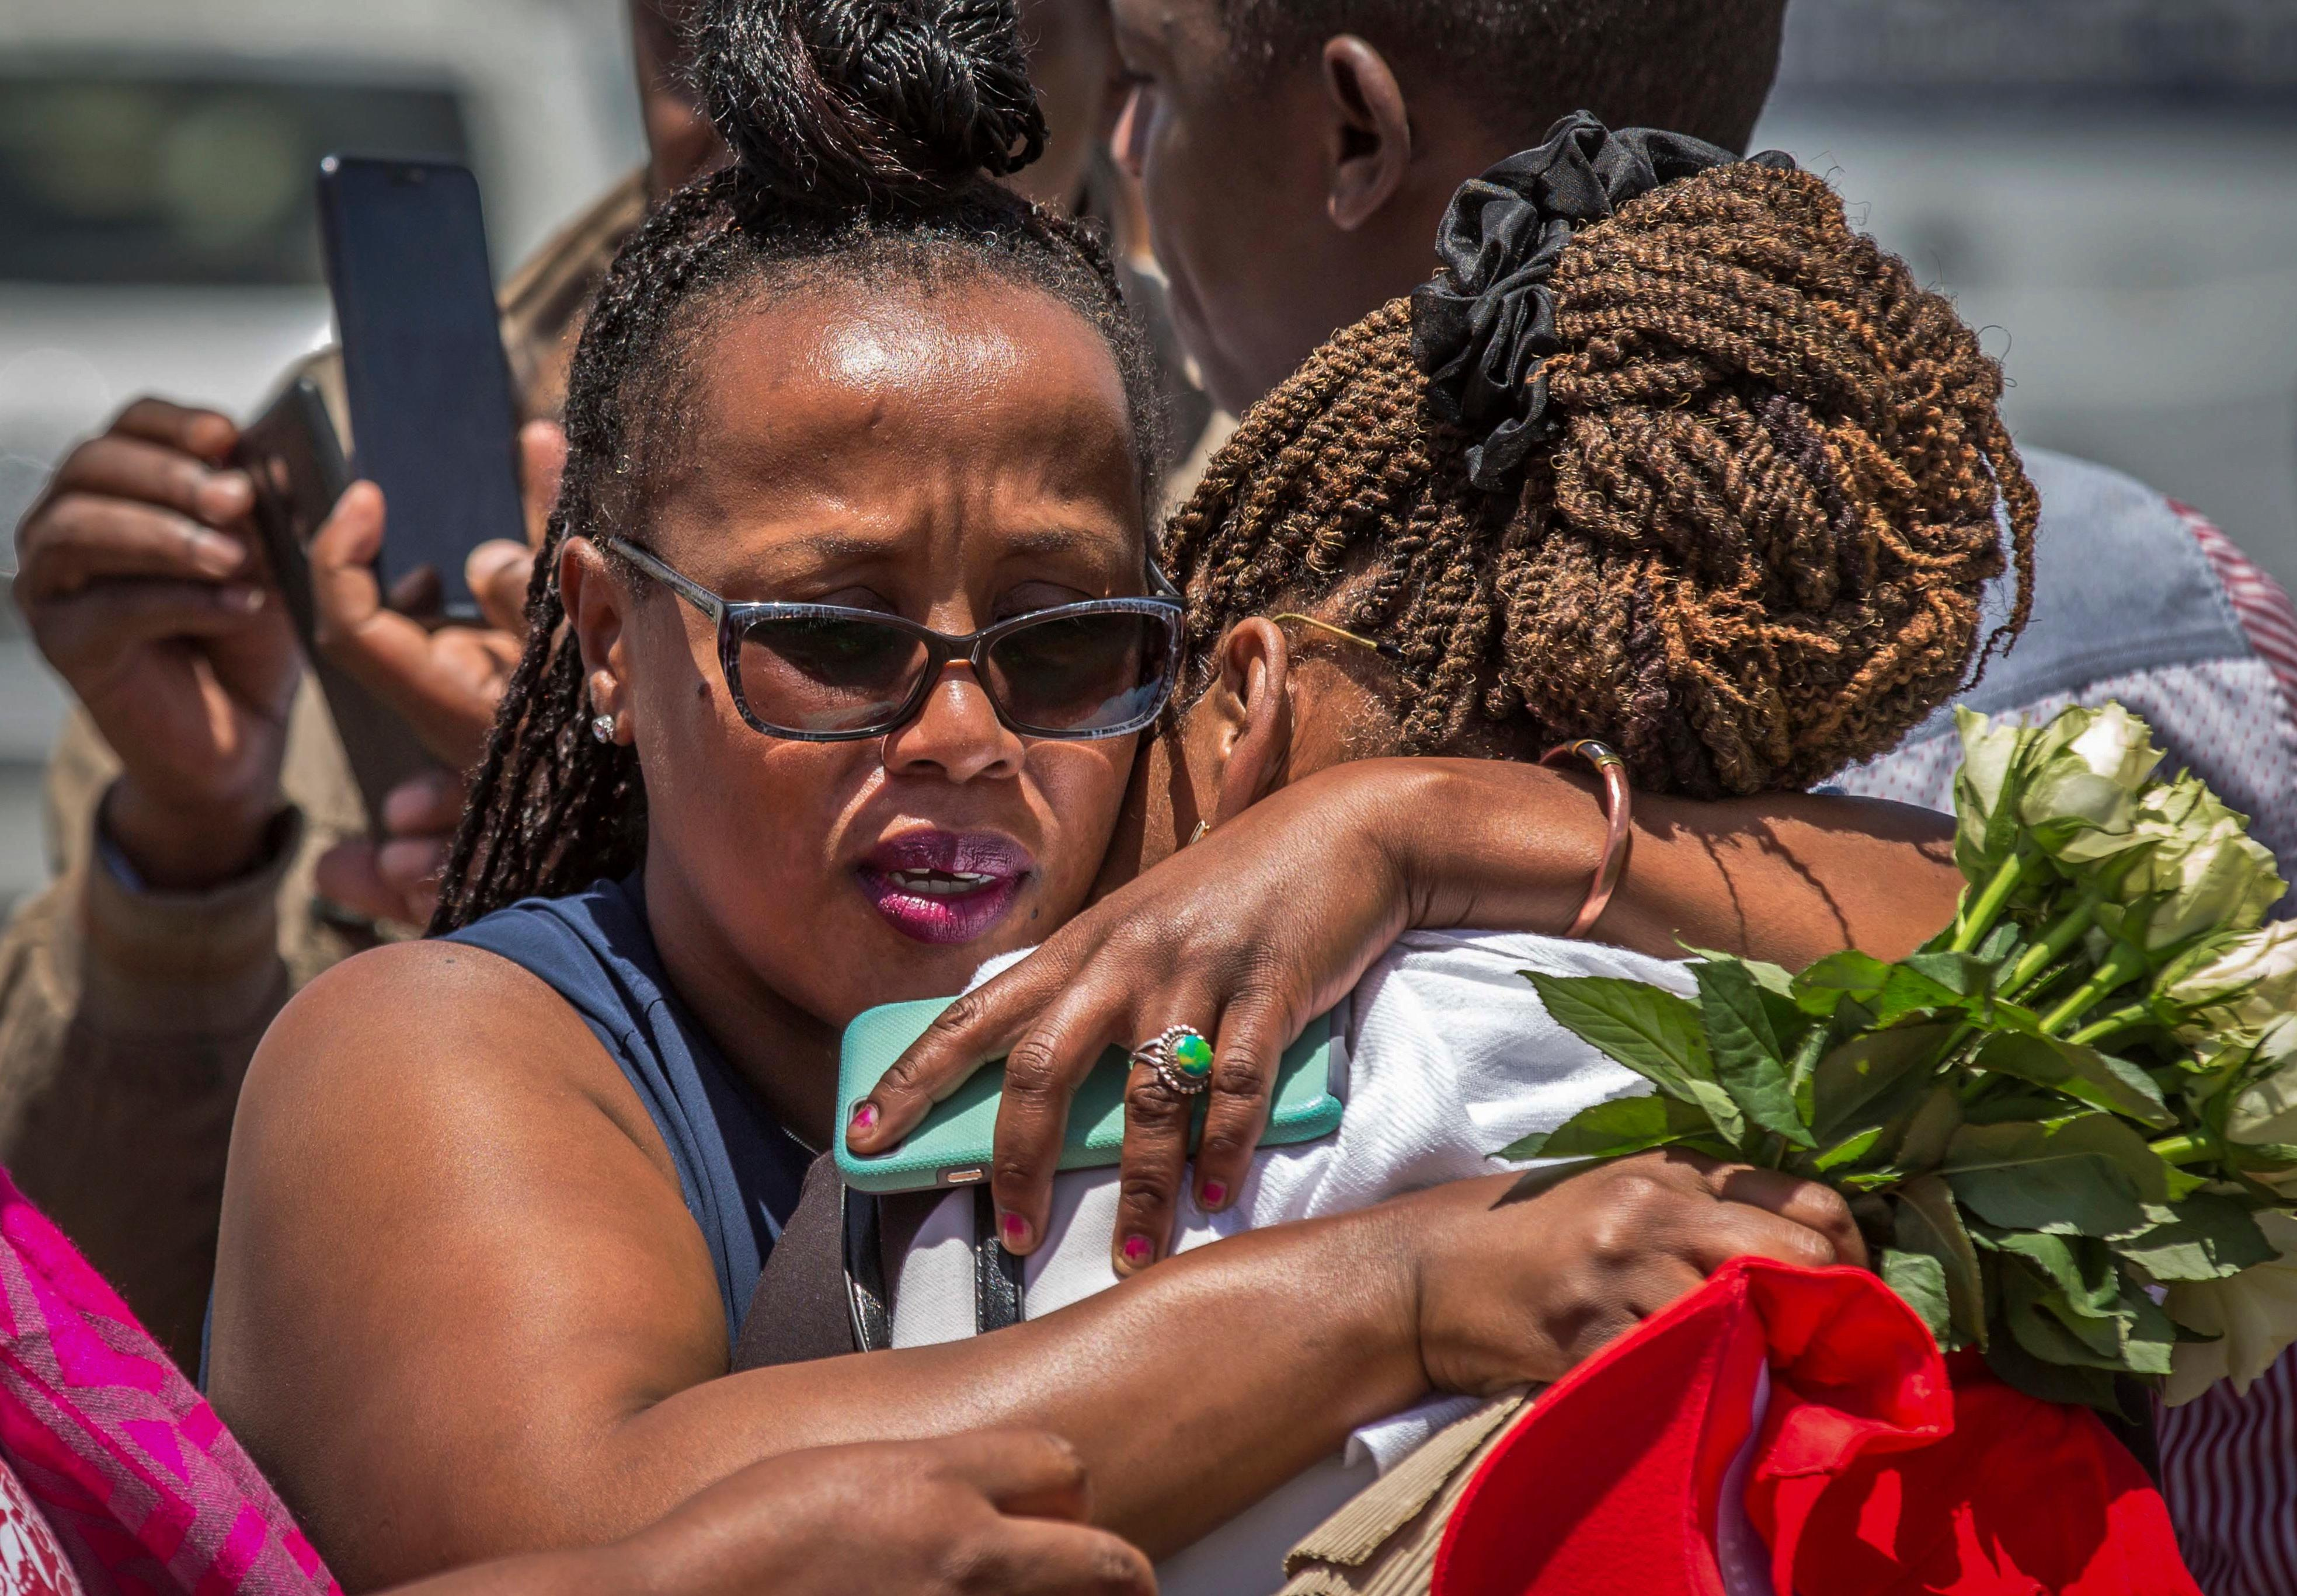 Relatives of a crash victim mourn at the scene where the Ethiopian Airlines Boeing 737 Max 8 crashed shortly after takeoff on Sunday killing all 157 on board, near Bishoftu, south-east of Addis Ababa, in Ethiopia, Friday, March 15. (AP Photo/Mulugeta Ayene)